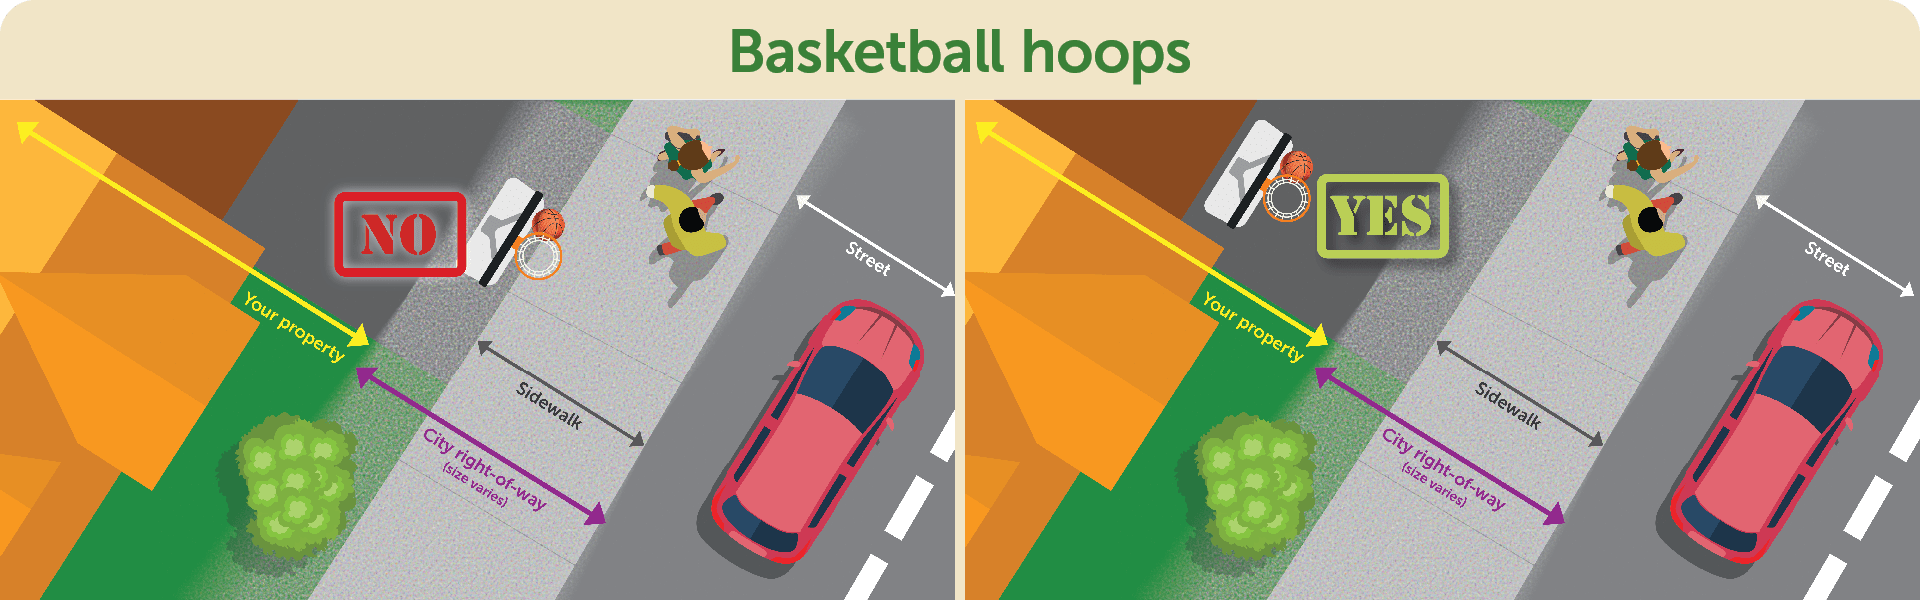 City right-of-way - Basketball hoops